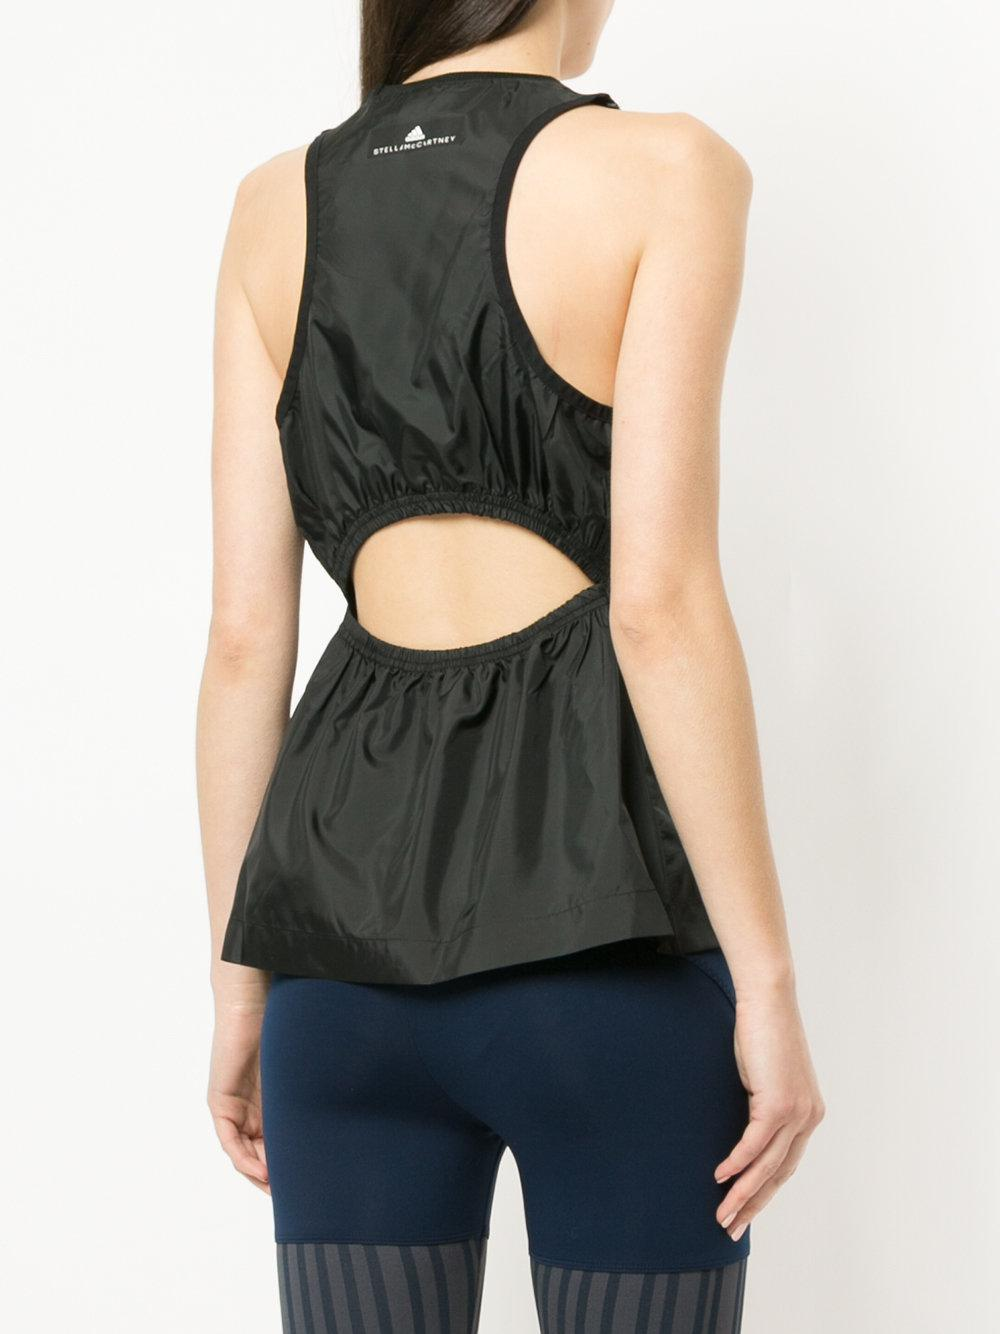 Adidas By Stella McCartney - Black Cut Out Racerback Tank Top - Lyst. View  fullscreen 17c3db808